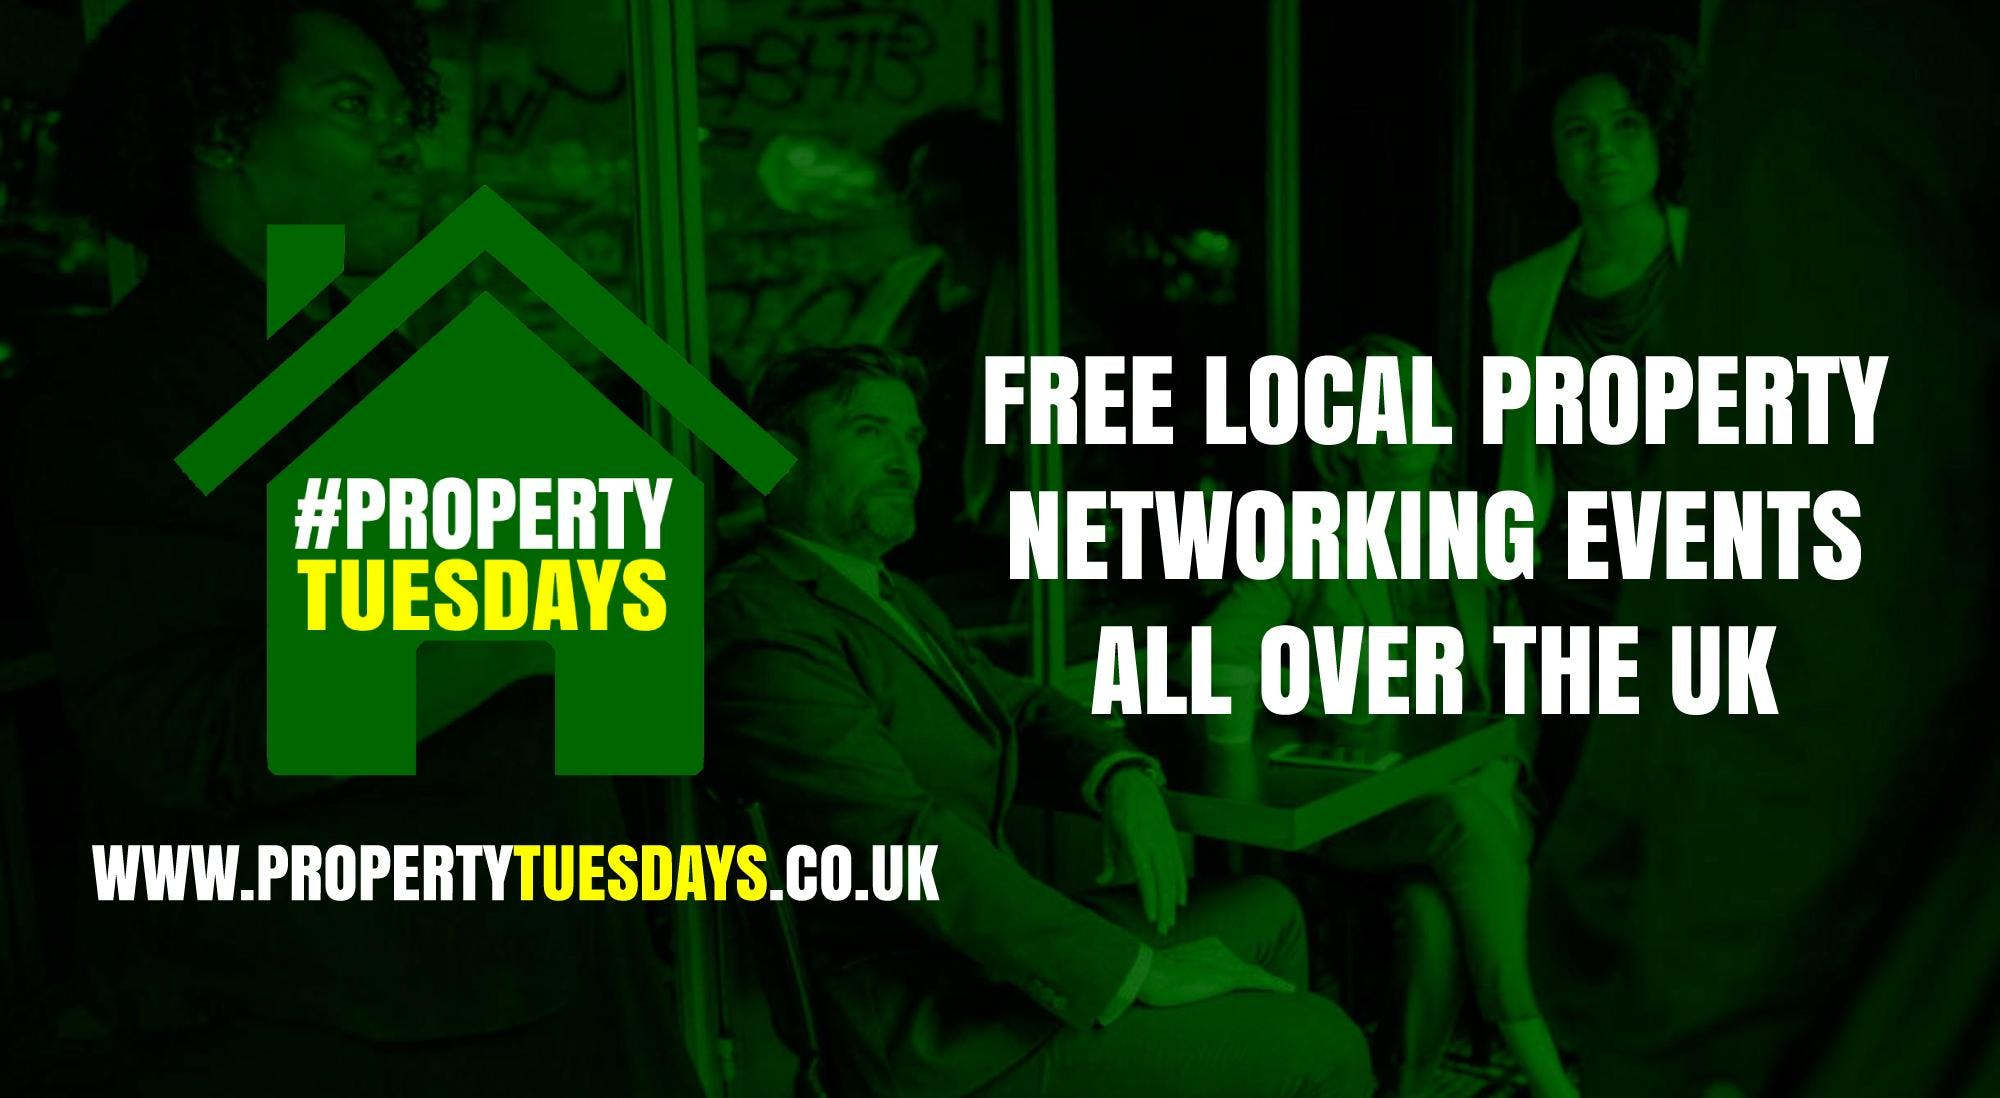 Property Tuesdays! Free property networking event in Liverpool